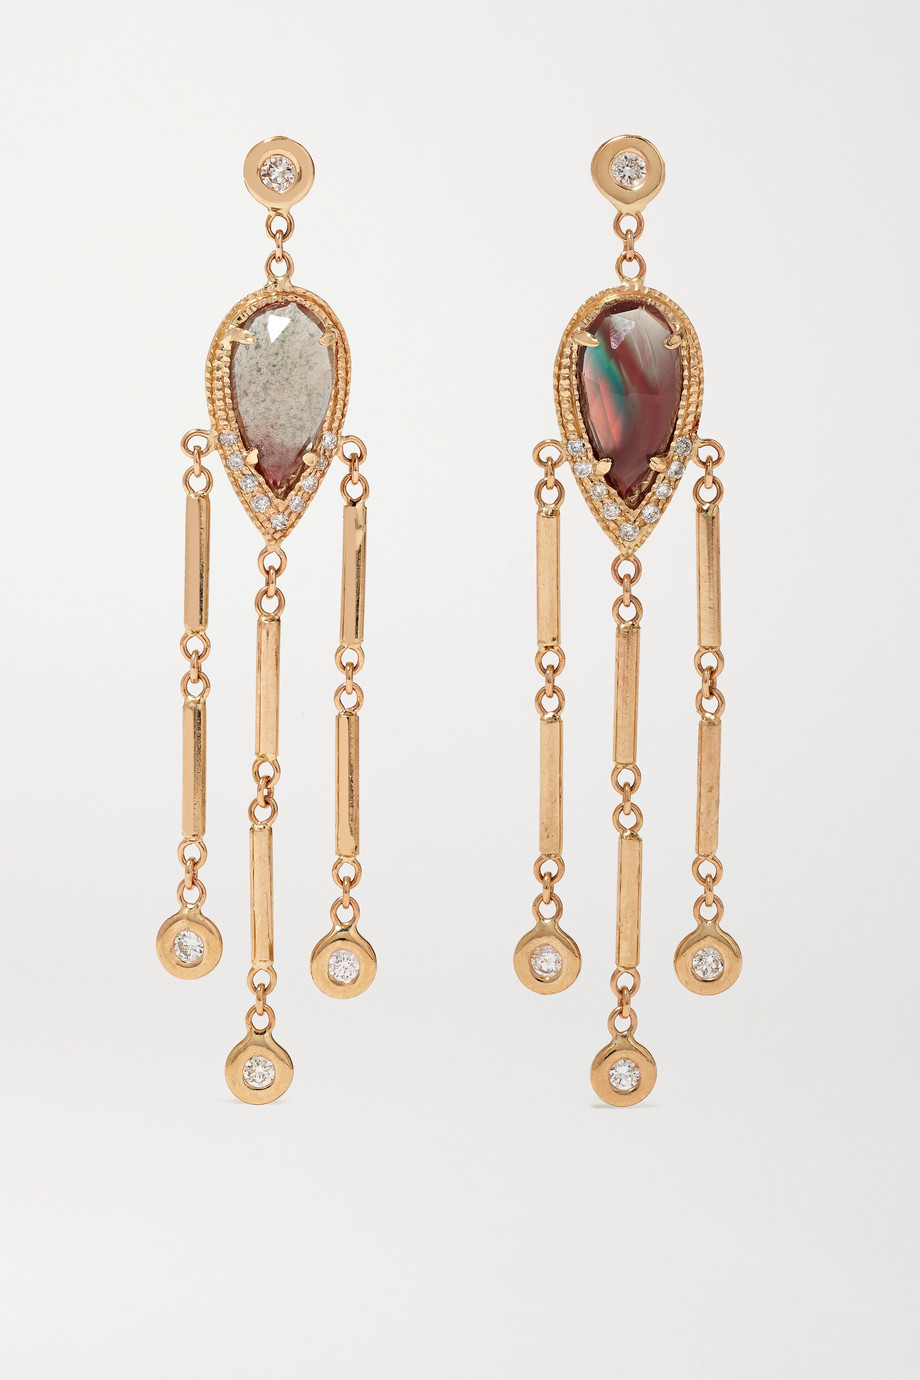 Jacquie Aiche 14-karat gold, sunstone and diamond earrings